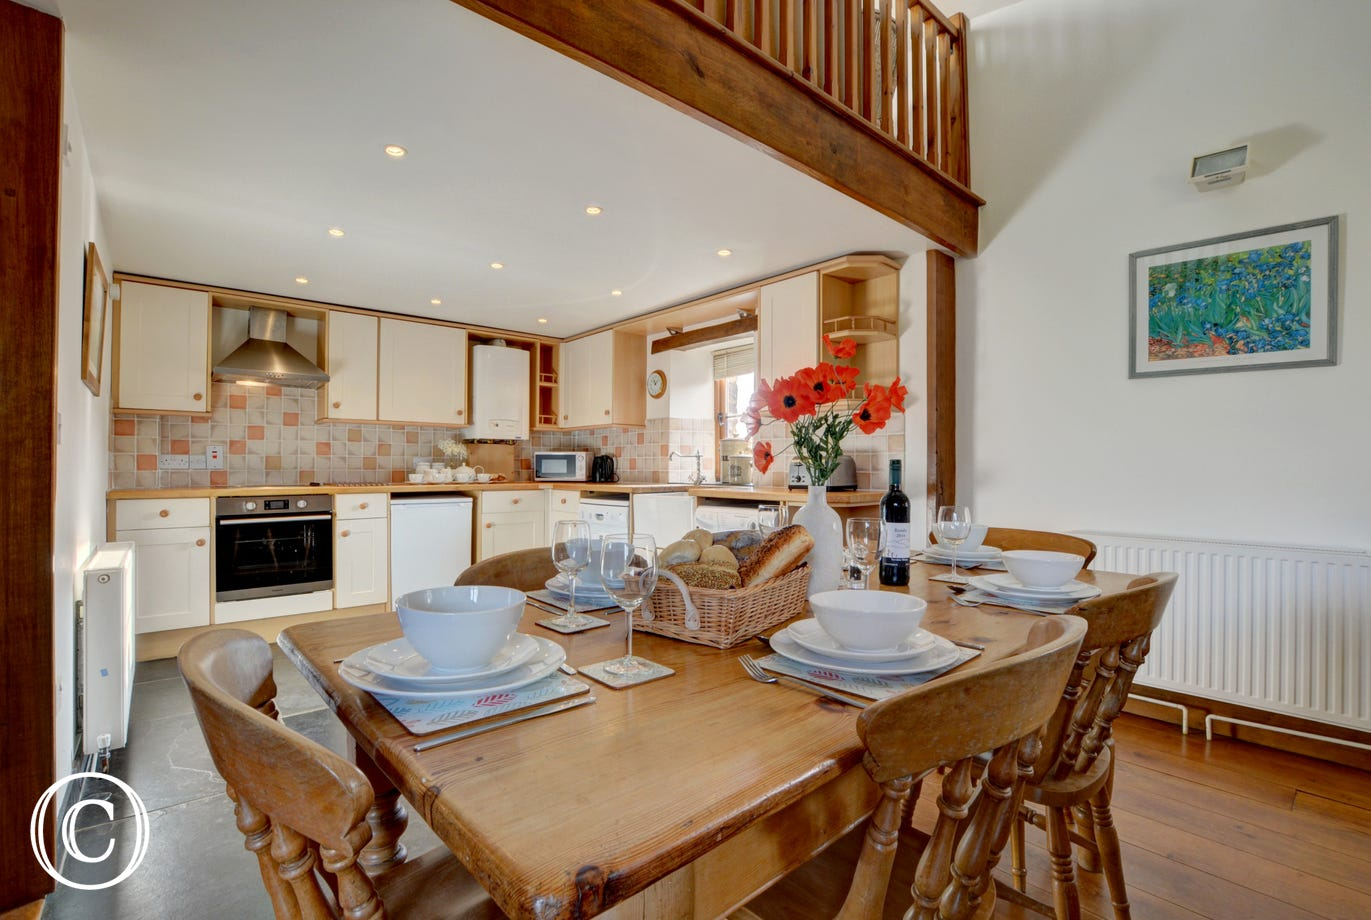 A large kitchen and dining area has all you will need should you decide to dine in